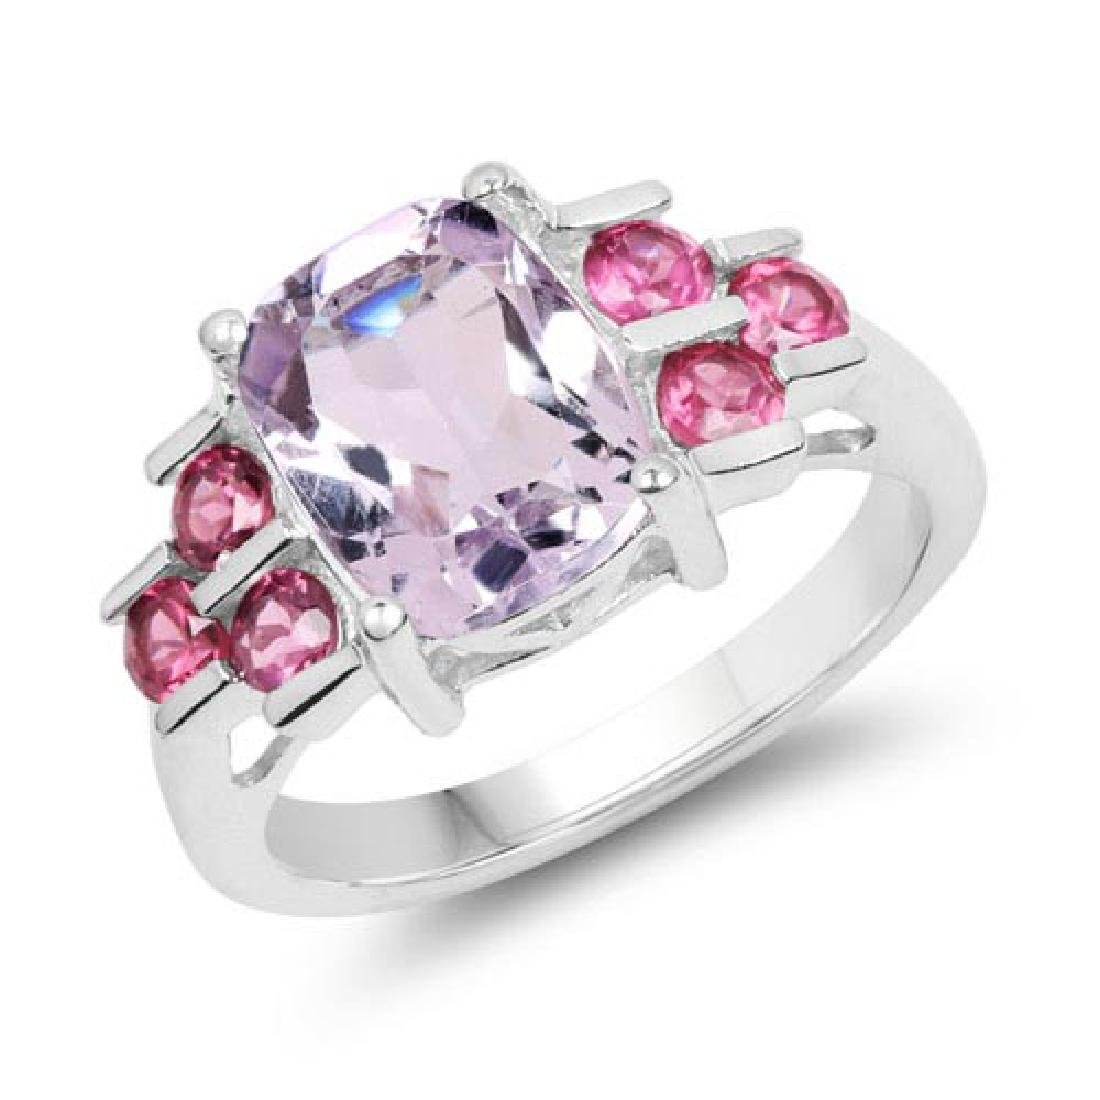 3.18 Carat Genuine Pink Amethyst and Rhodolite .925 Ste